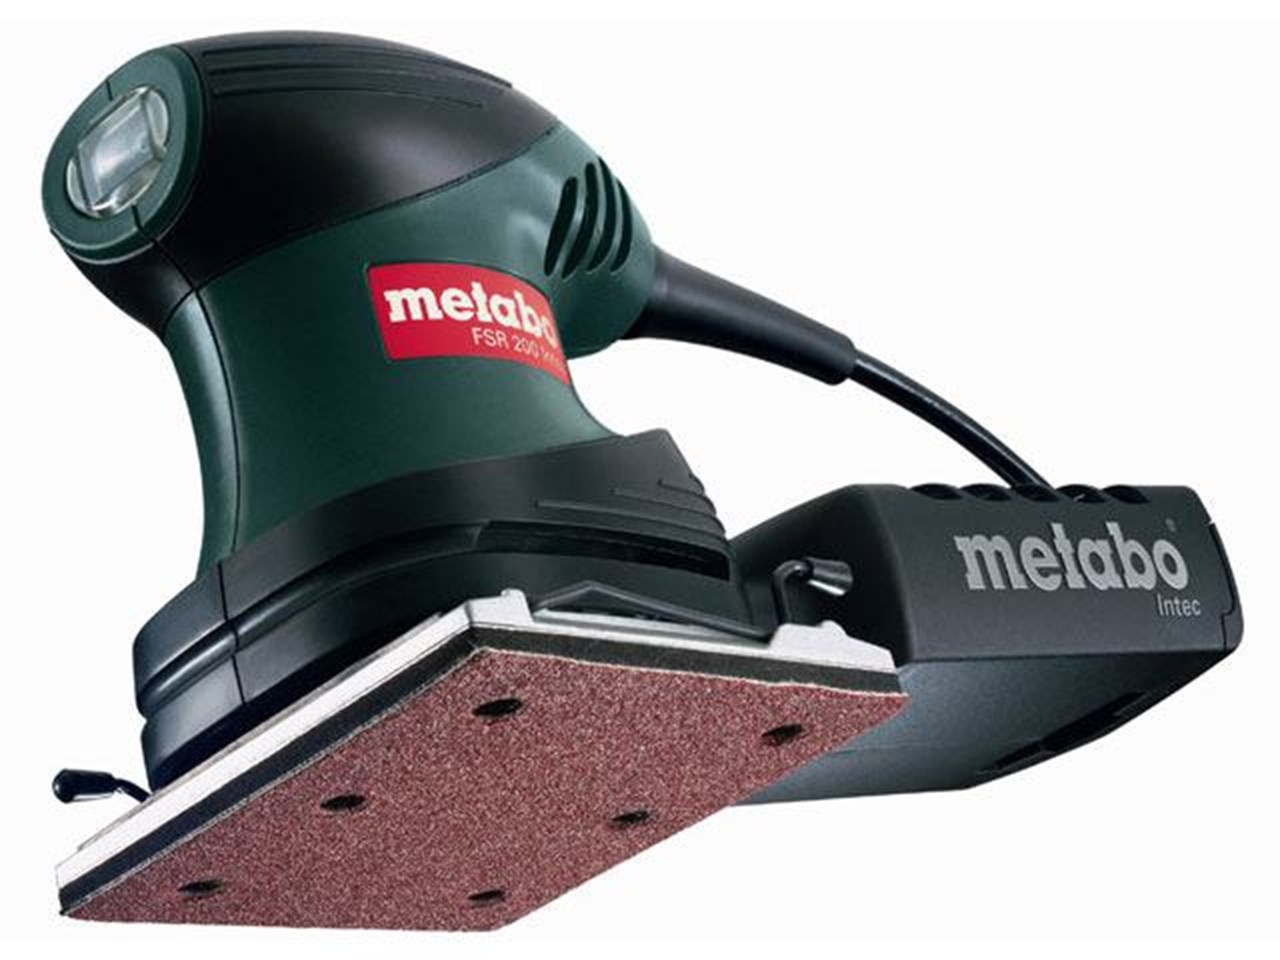 Metabo FSR-200 1/4 Sheet Intec Orbital Palm Sander 200W 240V - METFSR200